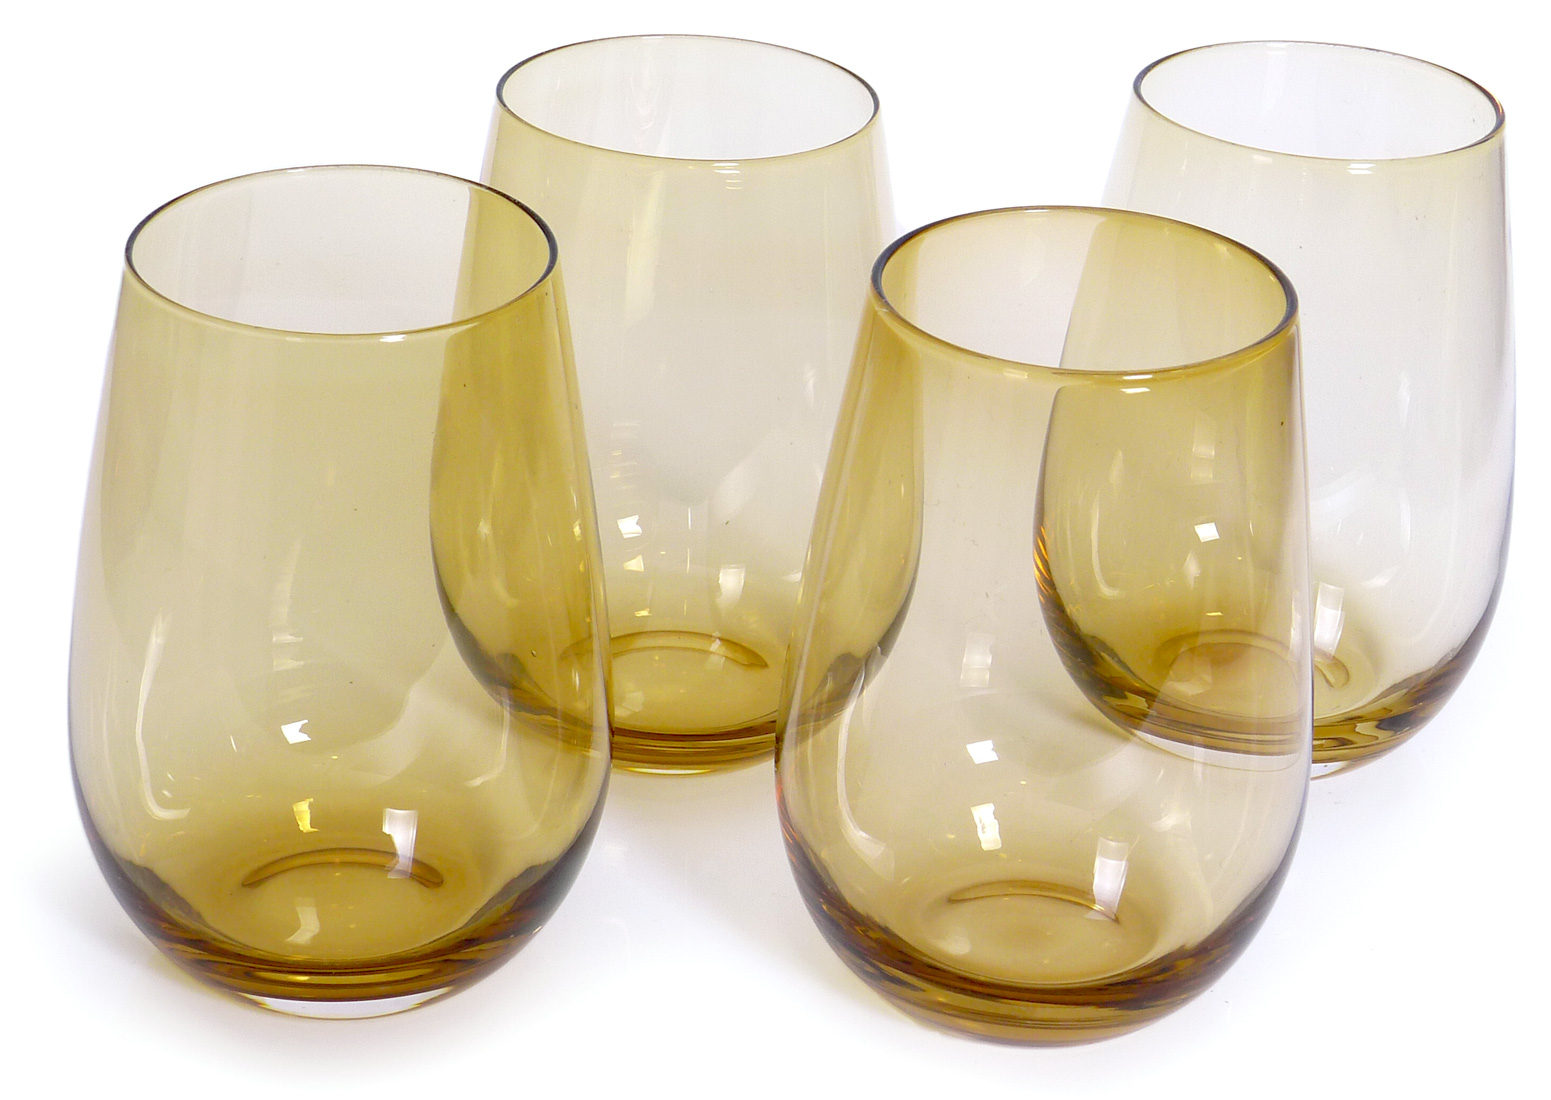 Image of Handcrafted Stemless Wine Glasses, 16-ounce, Golden Brown, Set of 6